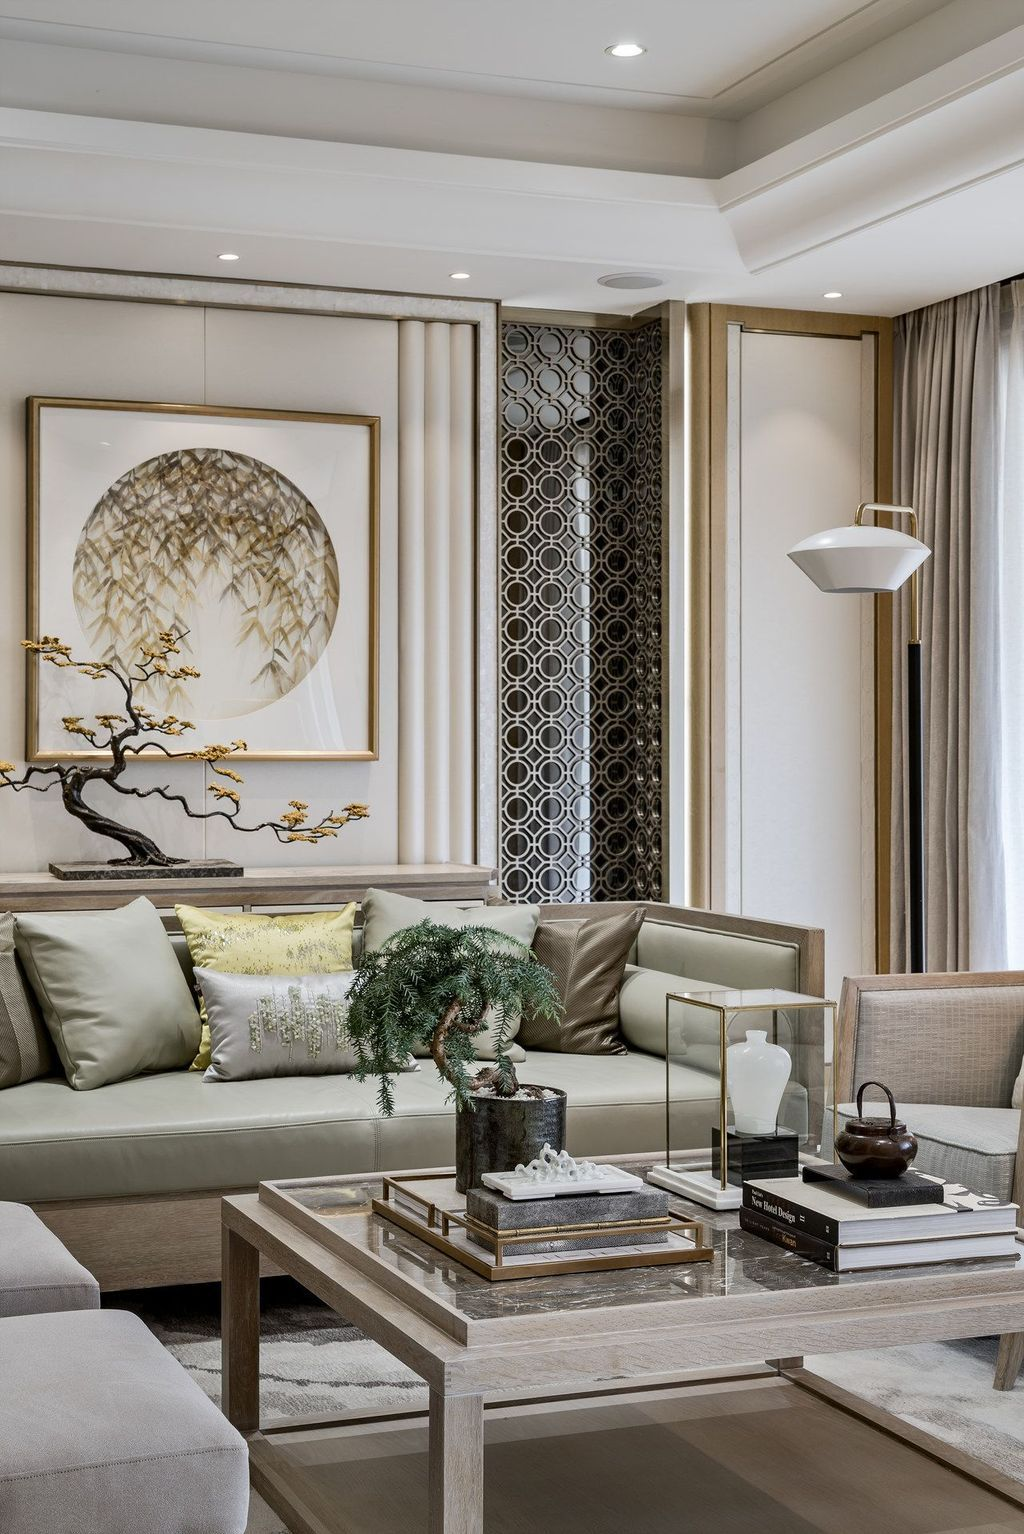 50 Cozy And Elegant Chinese Living Room Decoration Ideas Trendehouse Contemporary Living Room Design Elegant Living Room Contemporary Decor Living Room